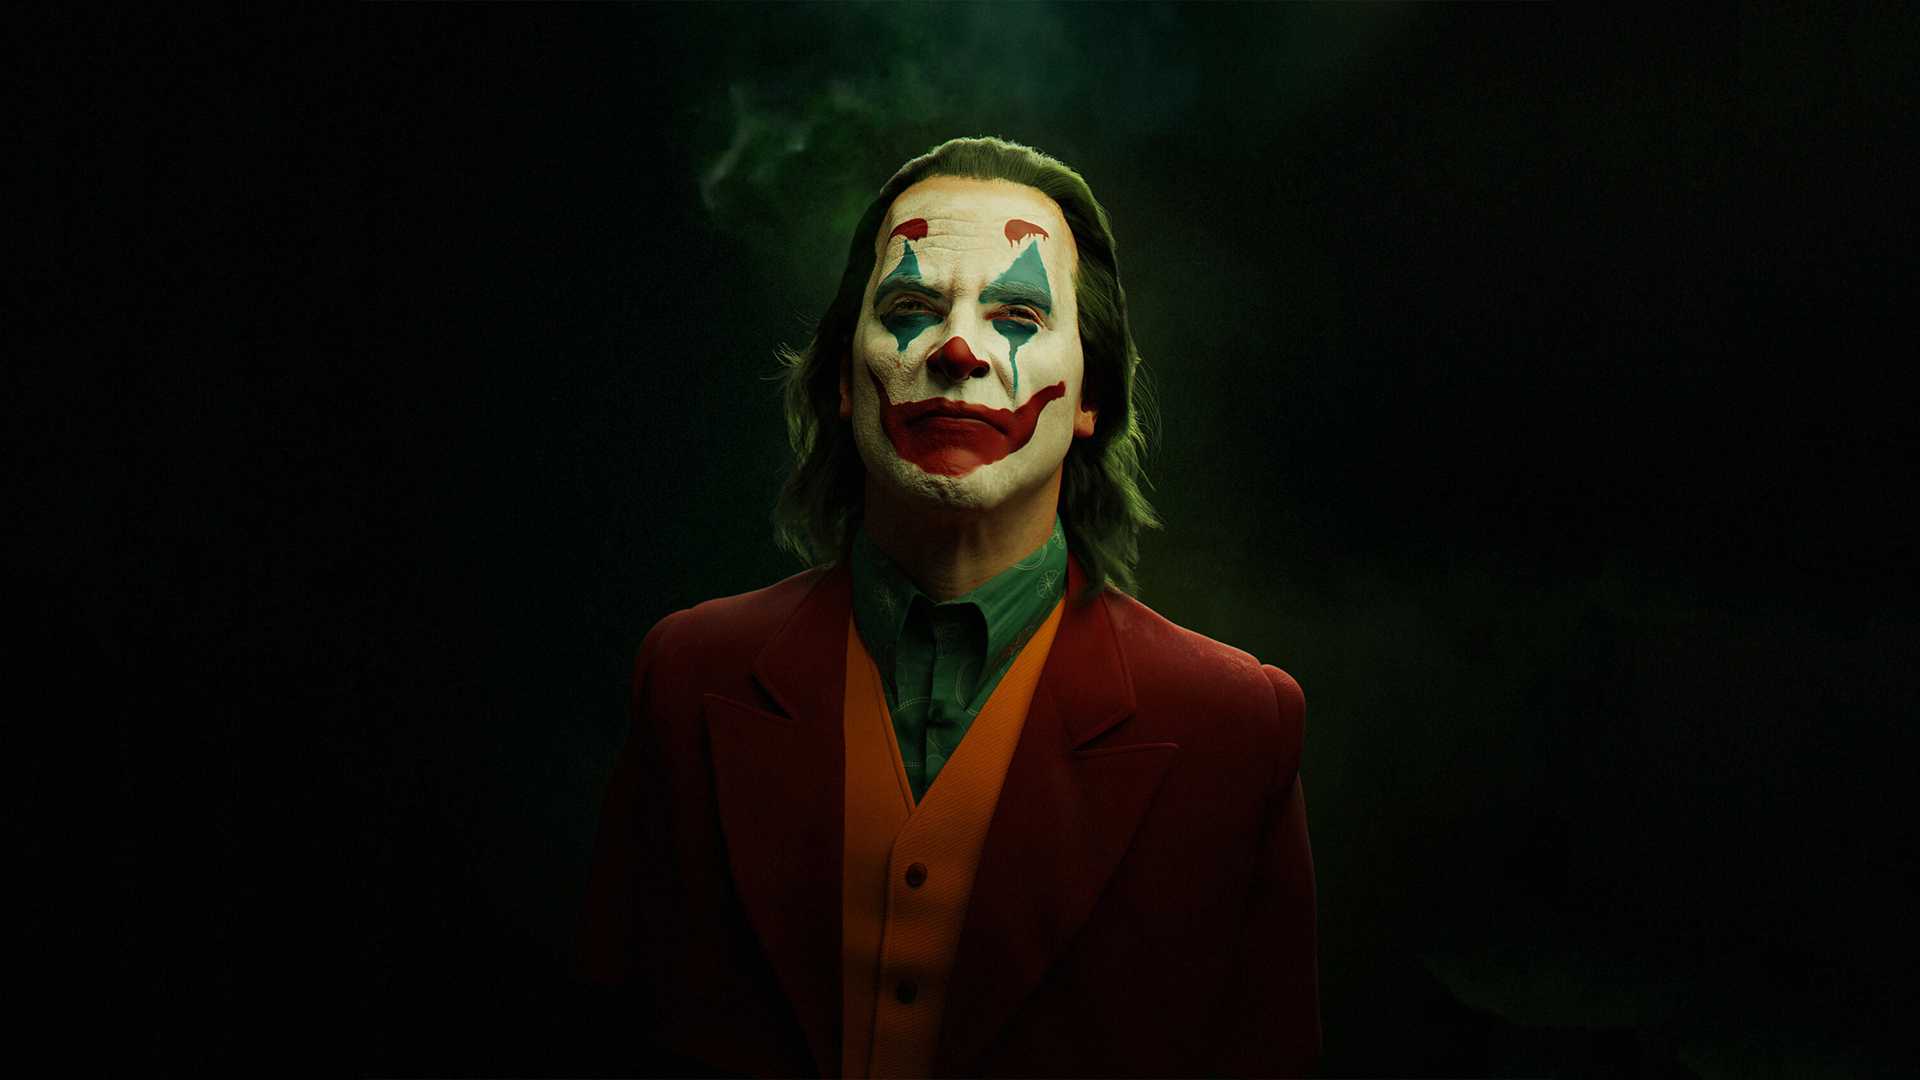 1920x1080 Joker 4k2020 Laptop Full Hd 1080p Hd 4k Wallpapers Images Backgrounds Photos And Pictures